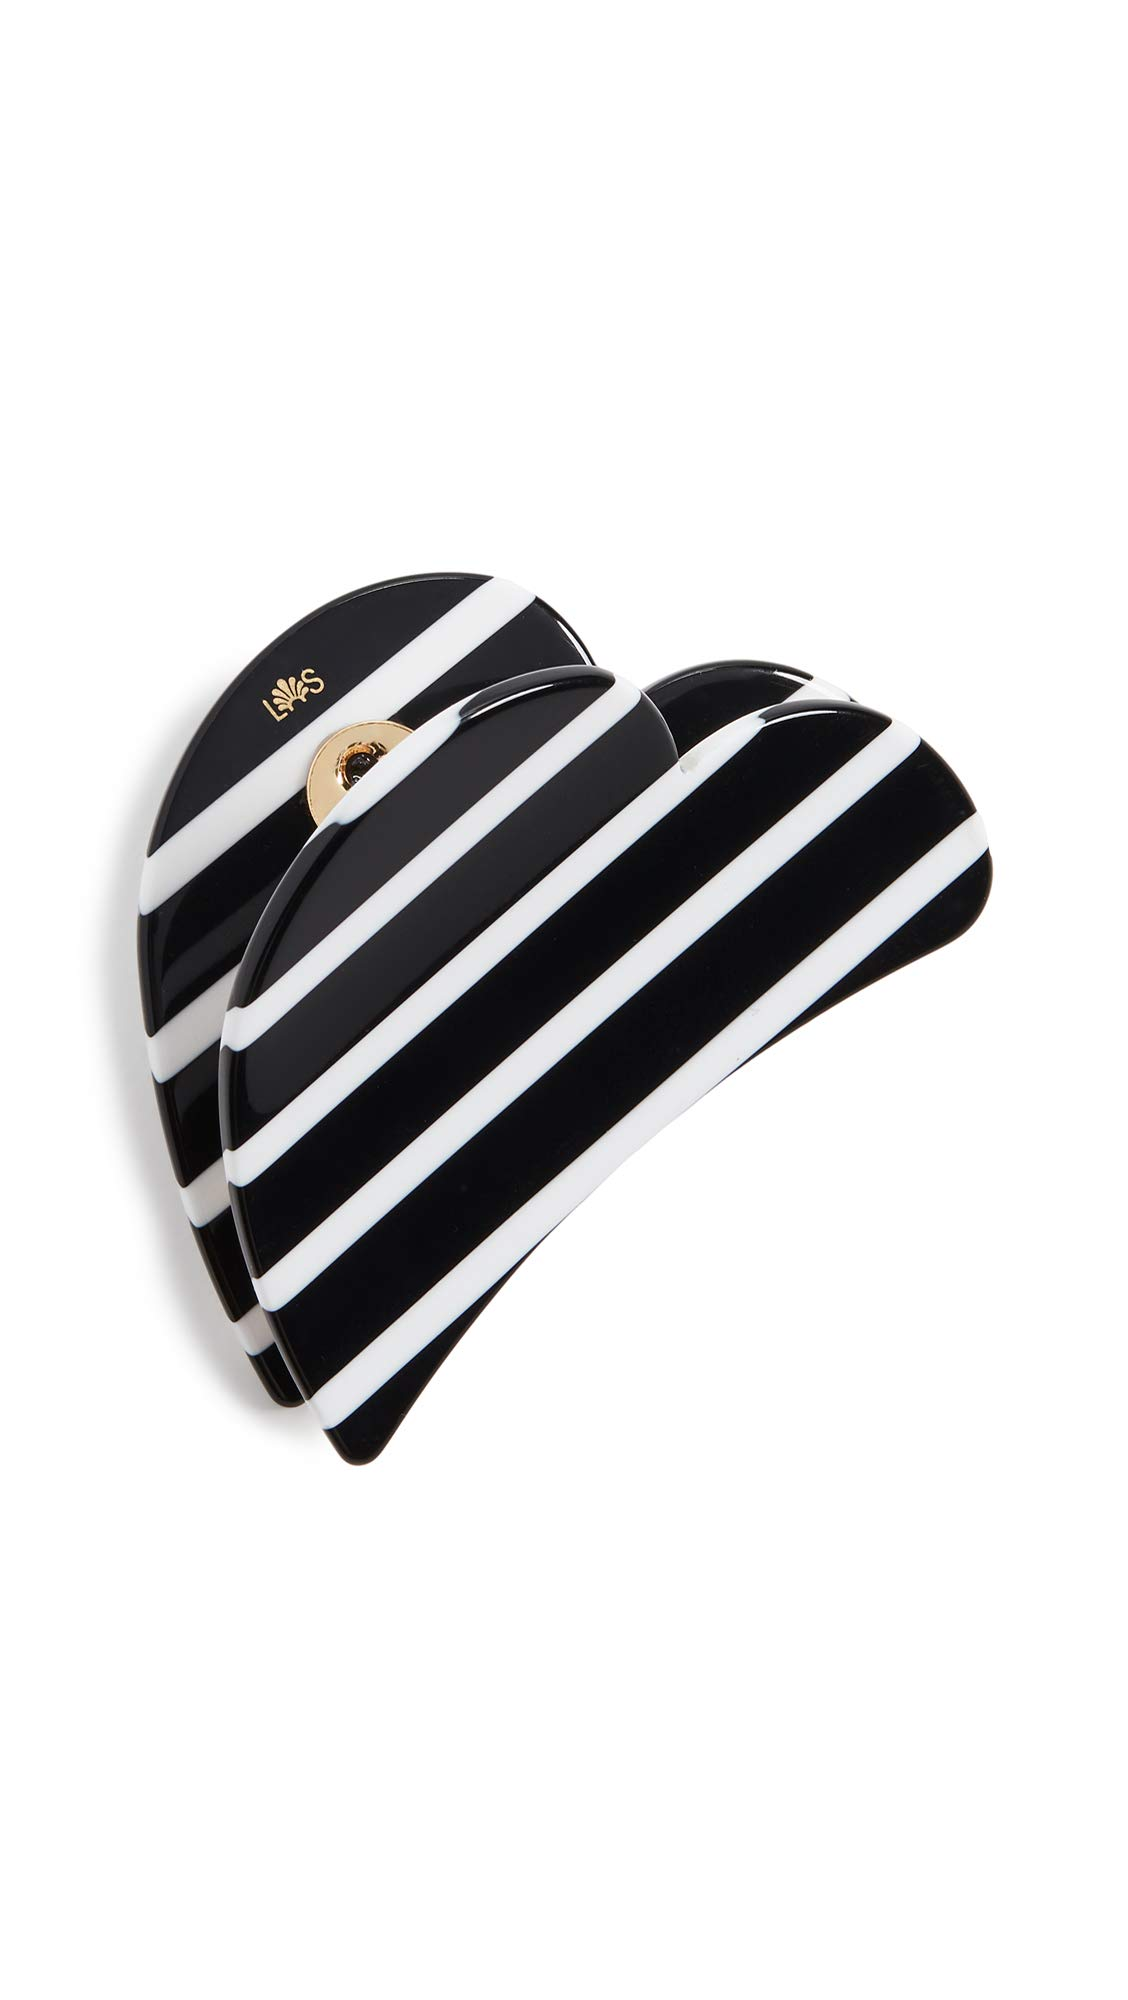 Lele Sadoughi Women's Butterfly Clip, Black and White, One Size